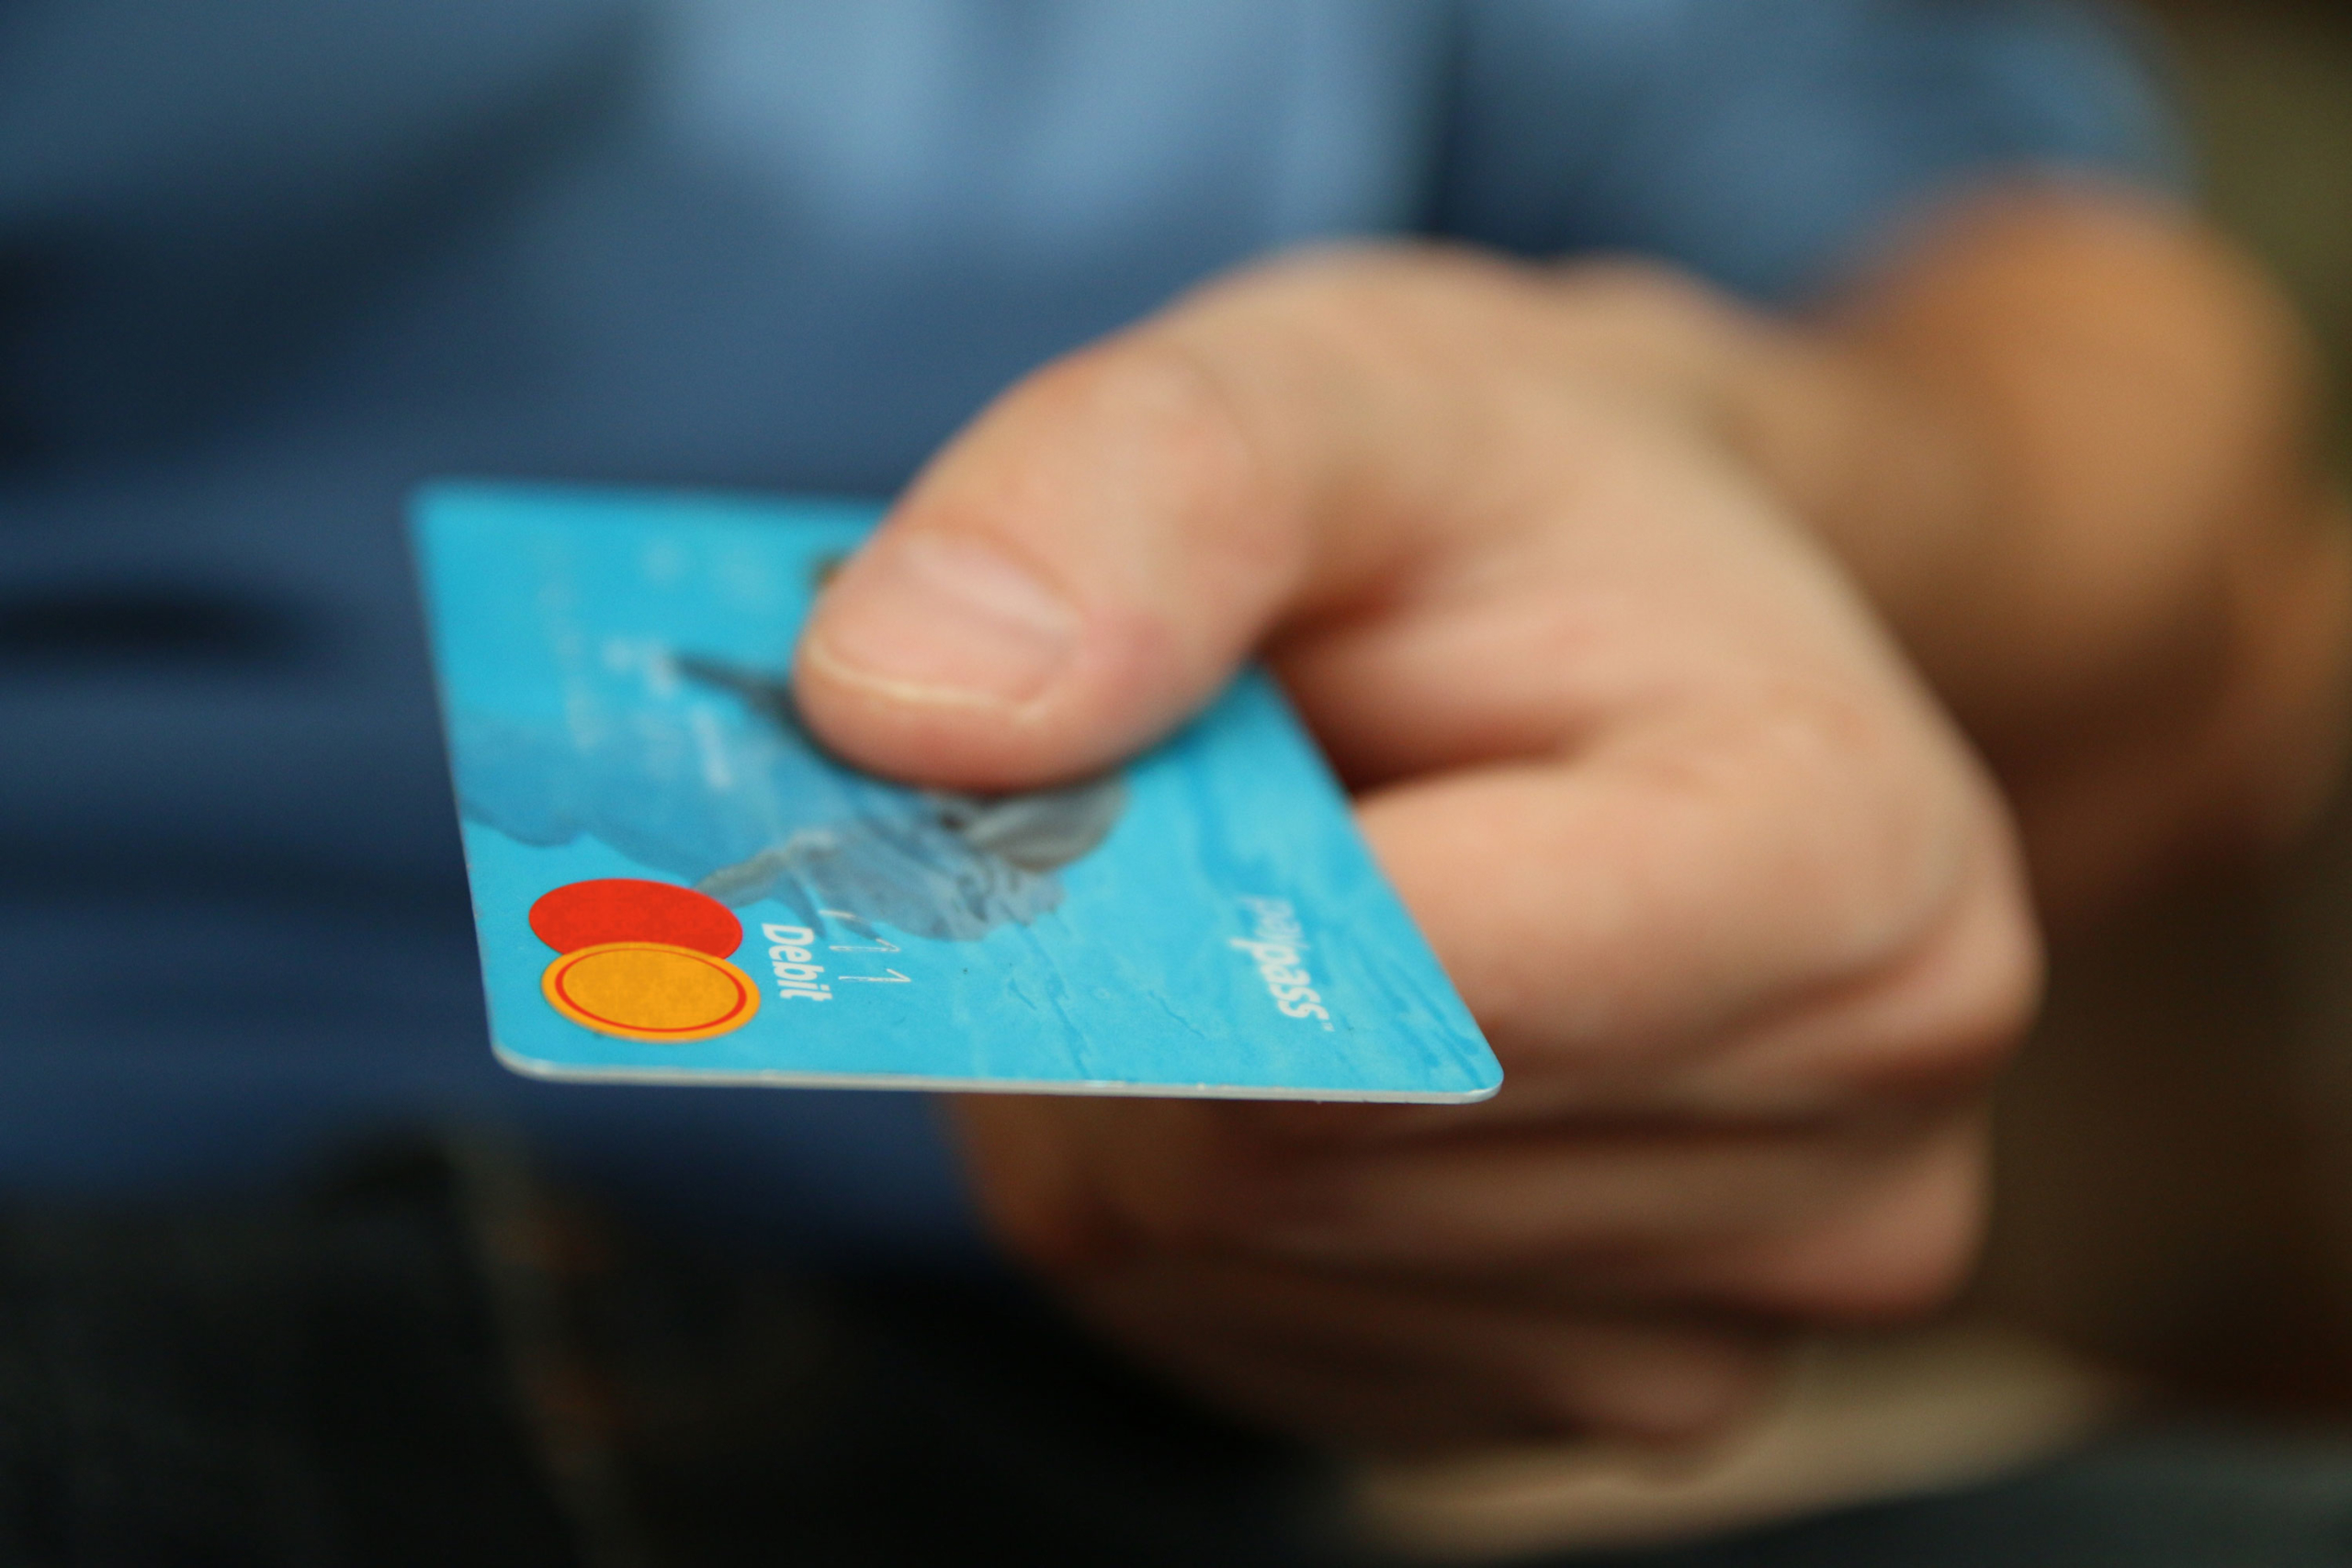 Should you use a credit card to renovate your home?